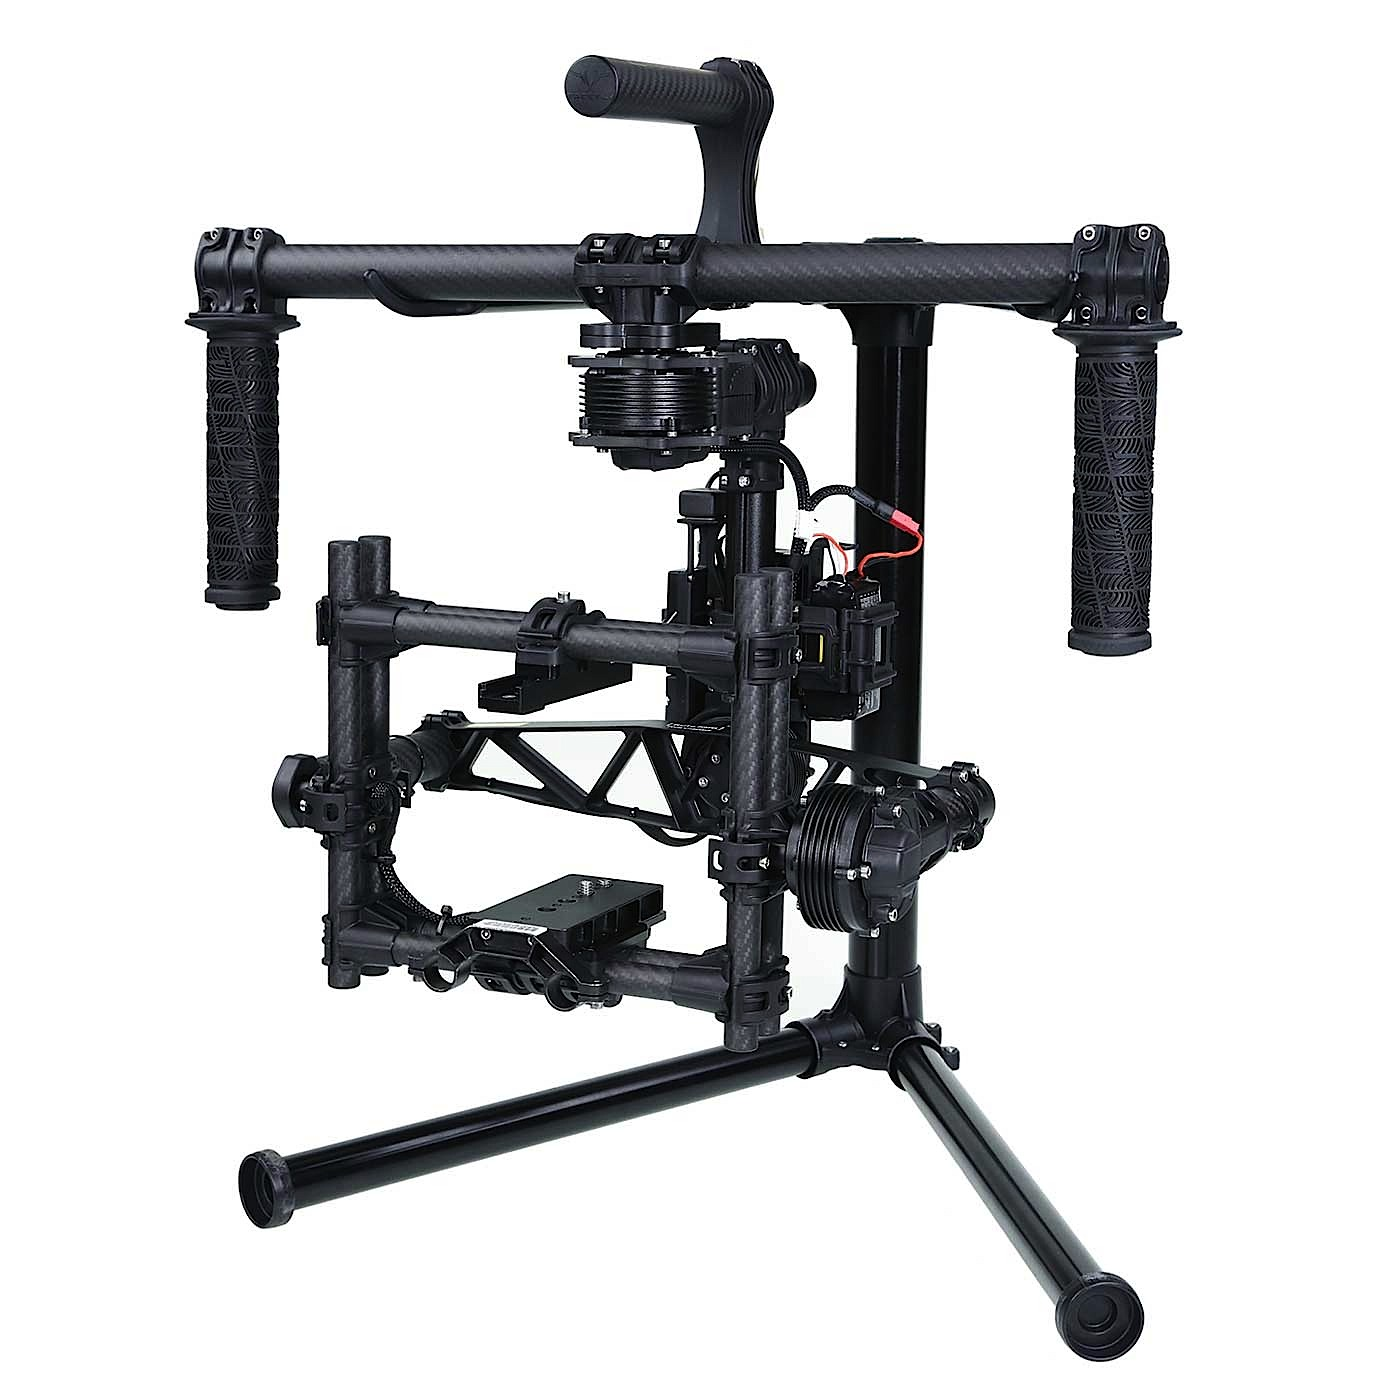 FreeFly MōVI M5 3-Axis Digital Stabilized Camera Gimbal